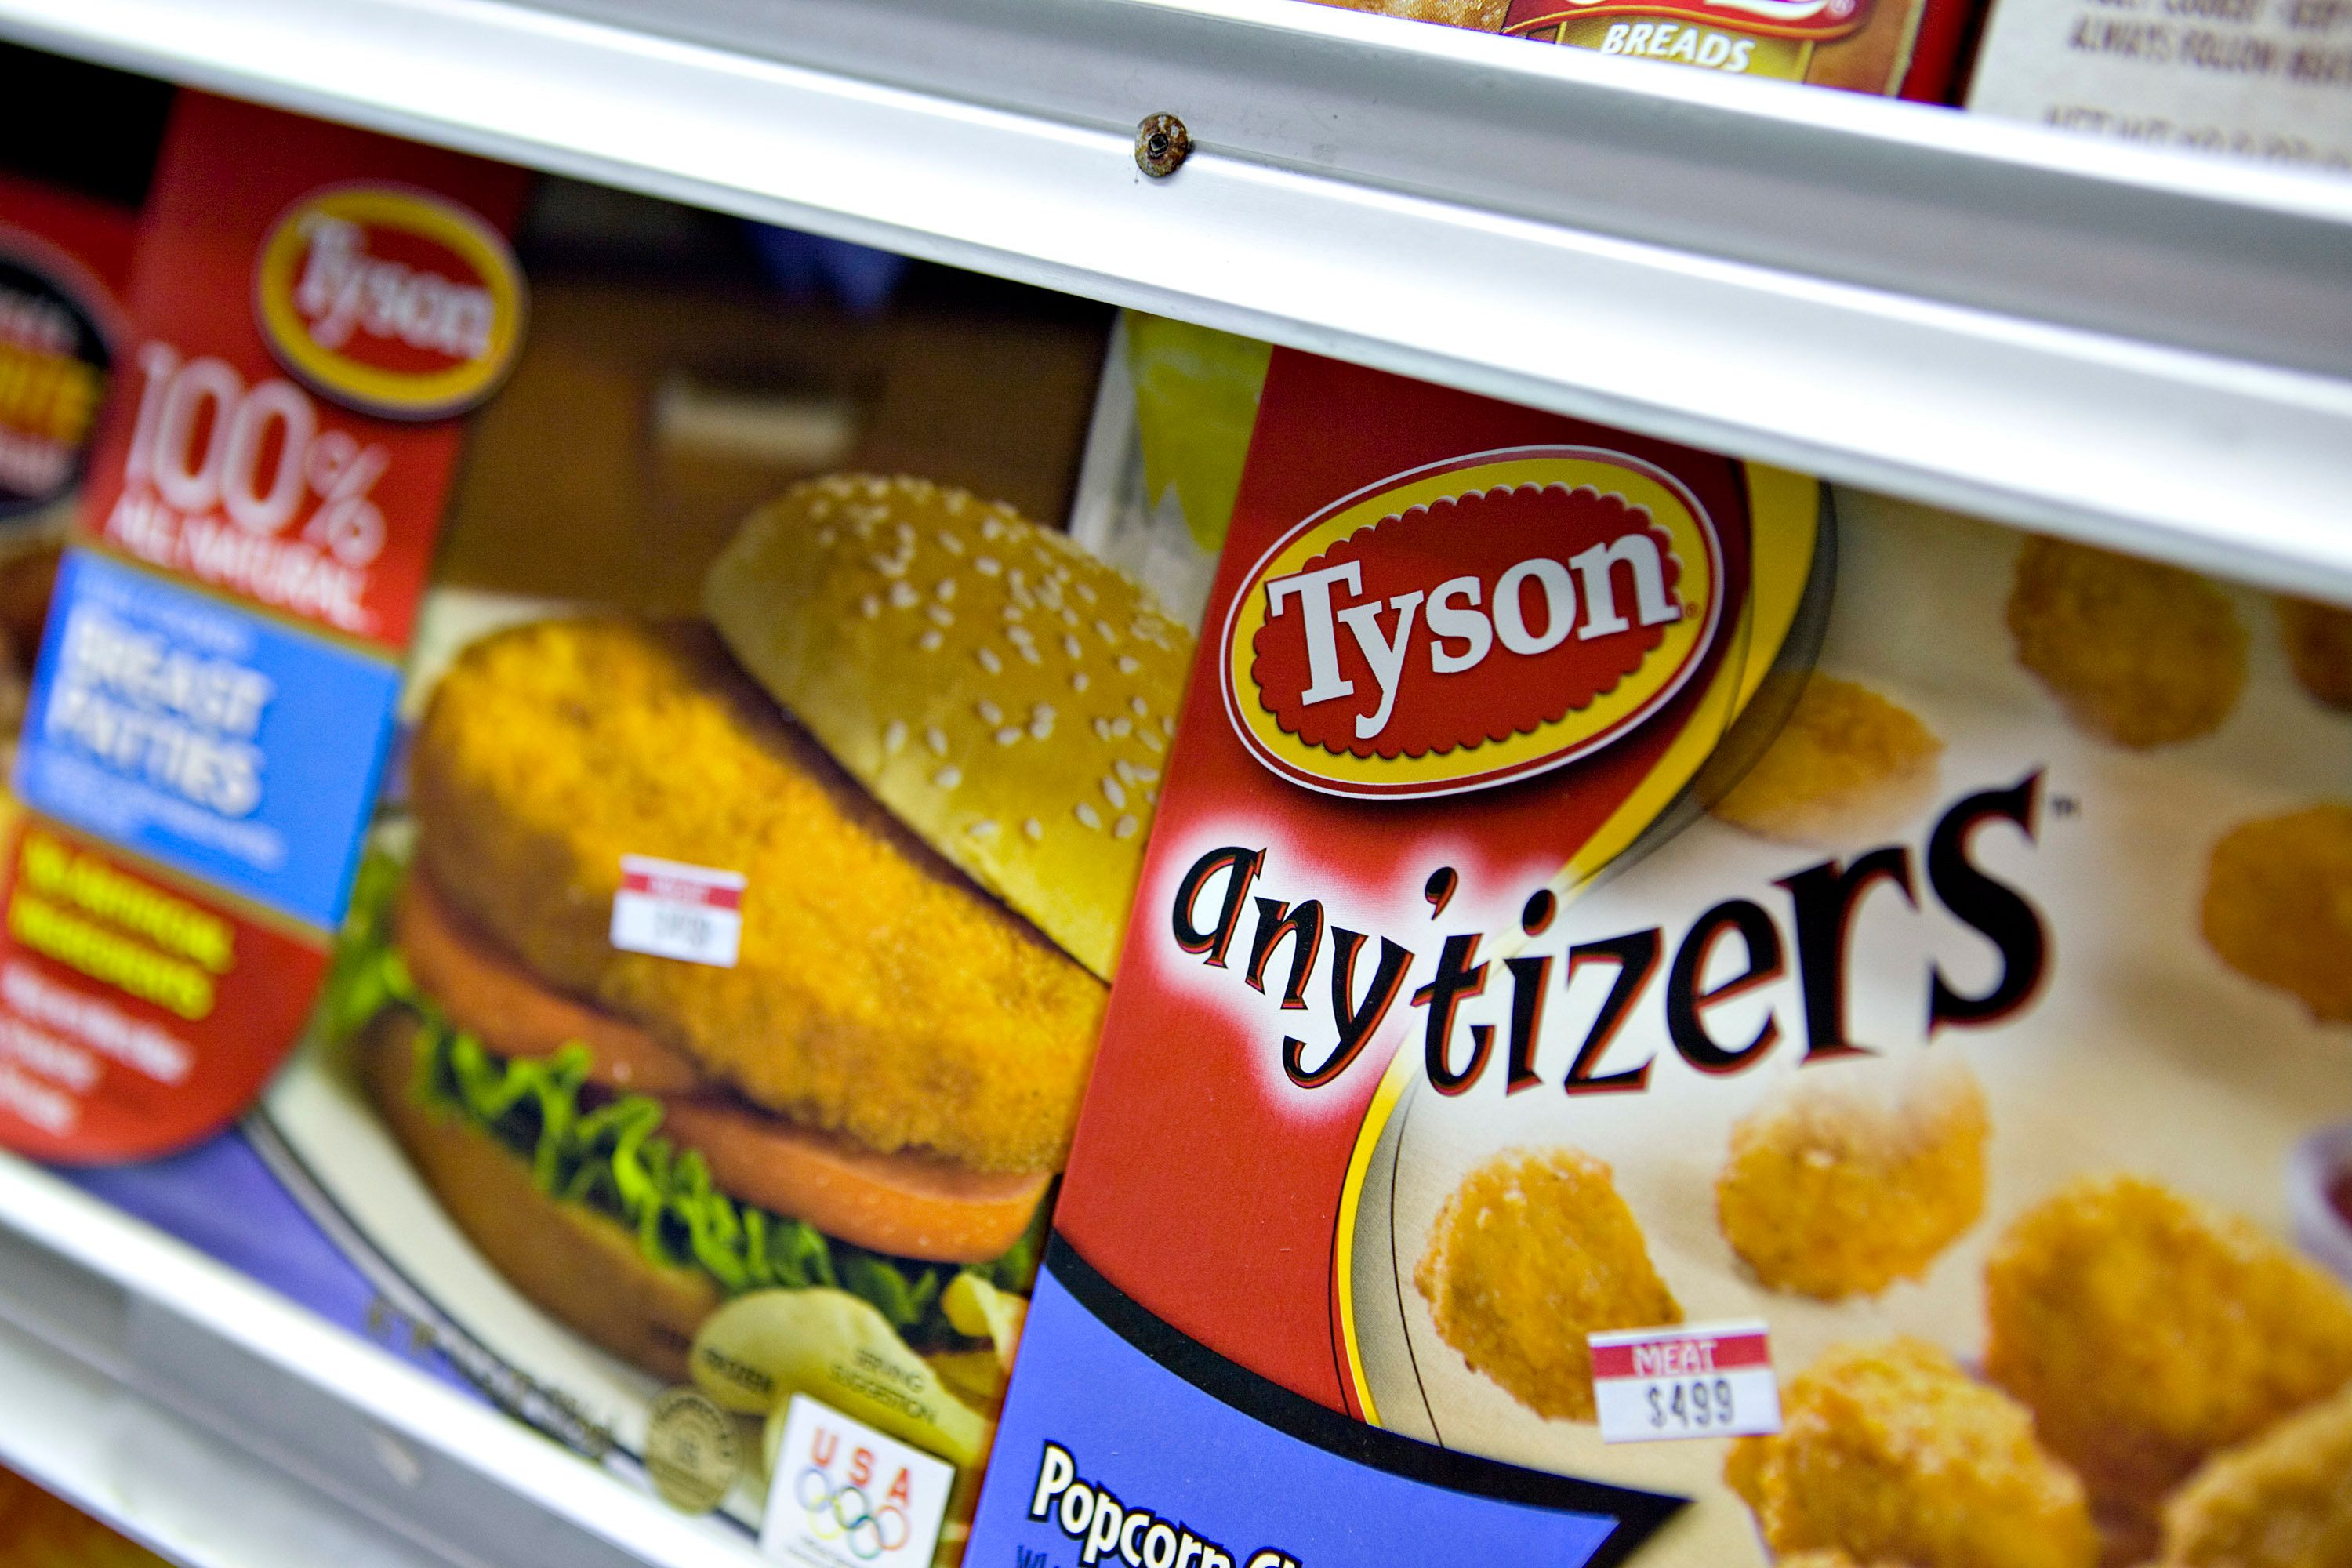 UNITED STATES - AUGUST 03:  Tyson popcorn chicken, right, and chicken patties sit on display in a supermarket in New York, U.S., on Monday, Aug. 3, 2009. Tyson Foods Inc., the world's largest meat producer, said profit climbed more than 10-fold in the third quarter as chicken prices increased.  (Photo by Daniel Acker/Bloomberg via Getty Images)